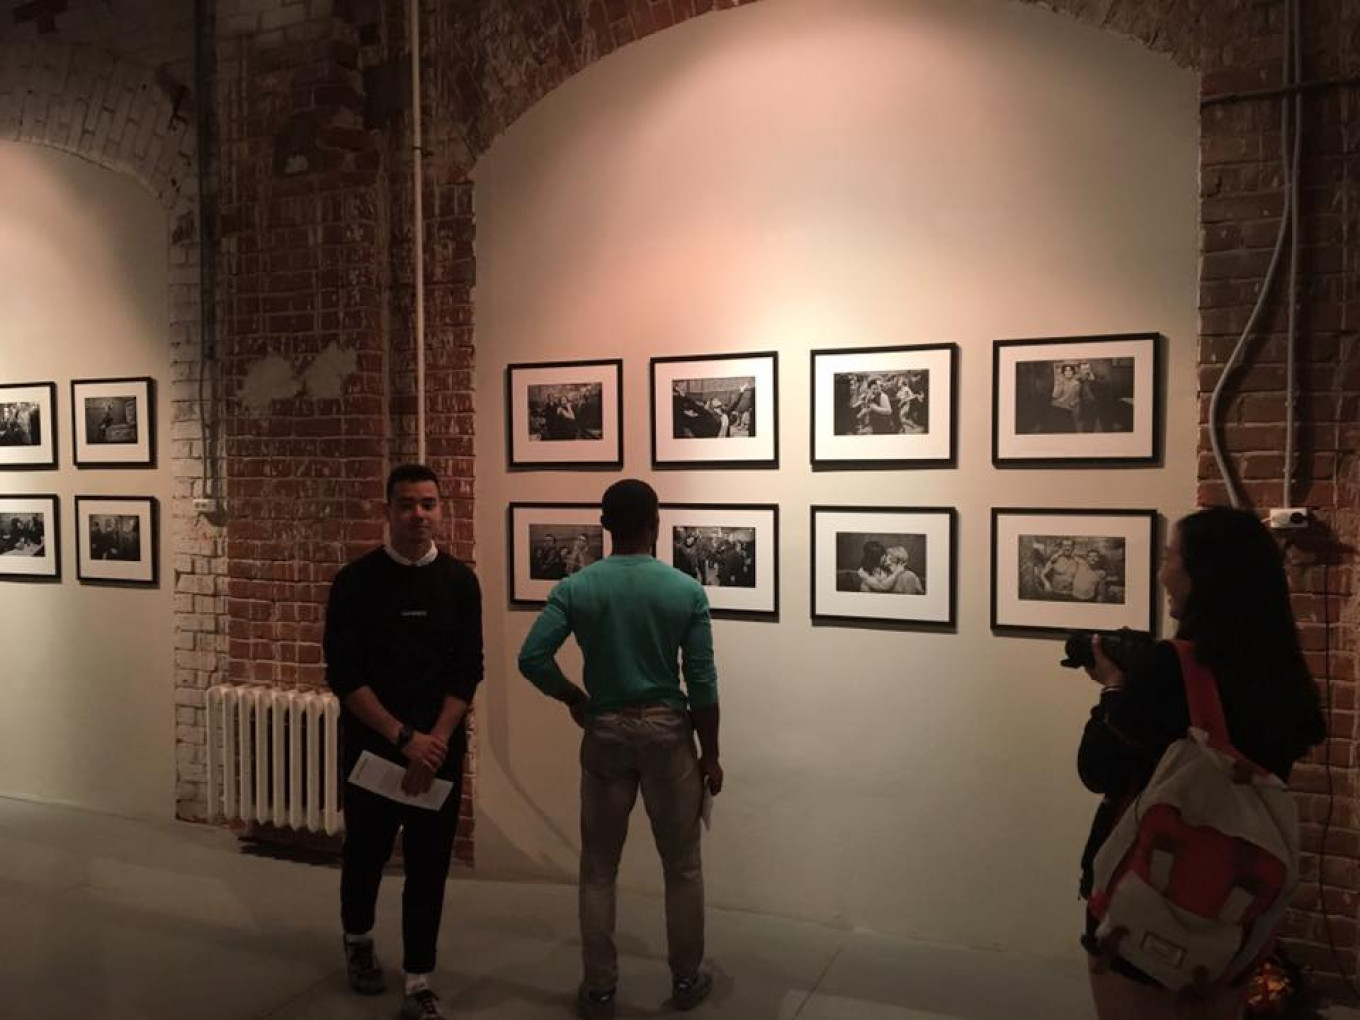 Show of works by Anders Petersen at the Smena Center for Contemporary Culture, Kazan Facebook